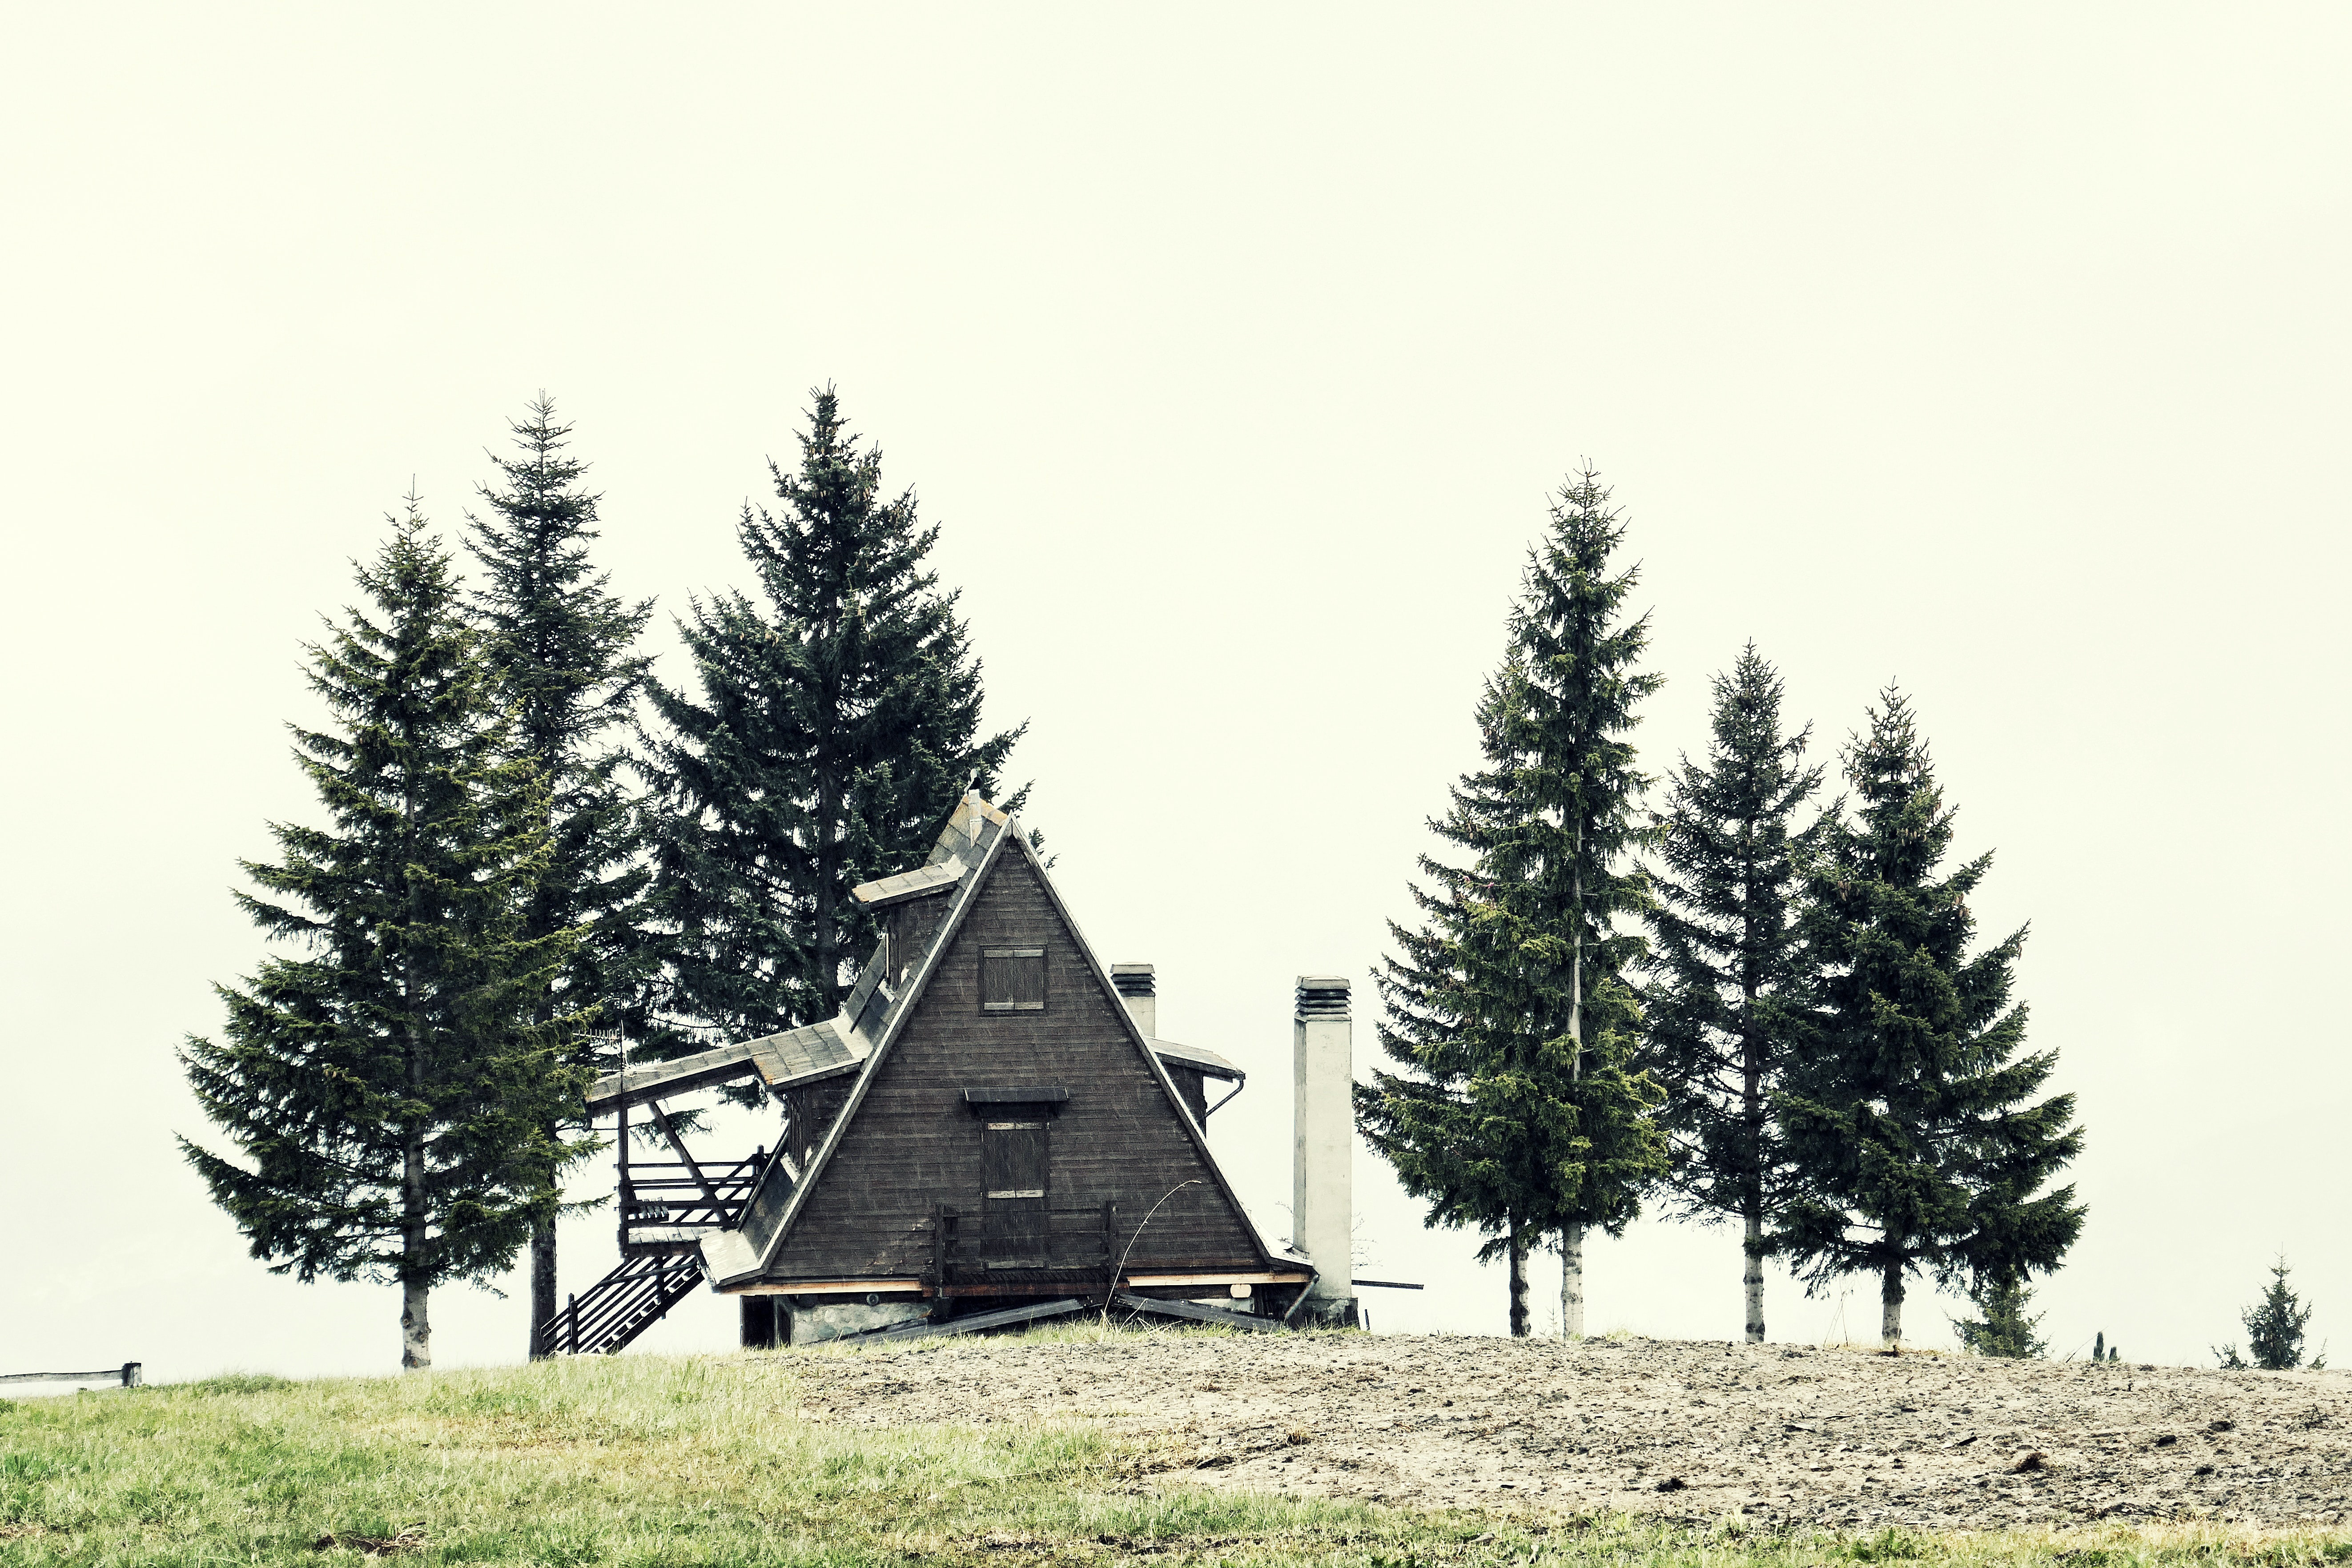 landscape photography of house surrounded pine trees